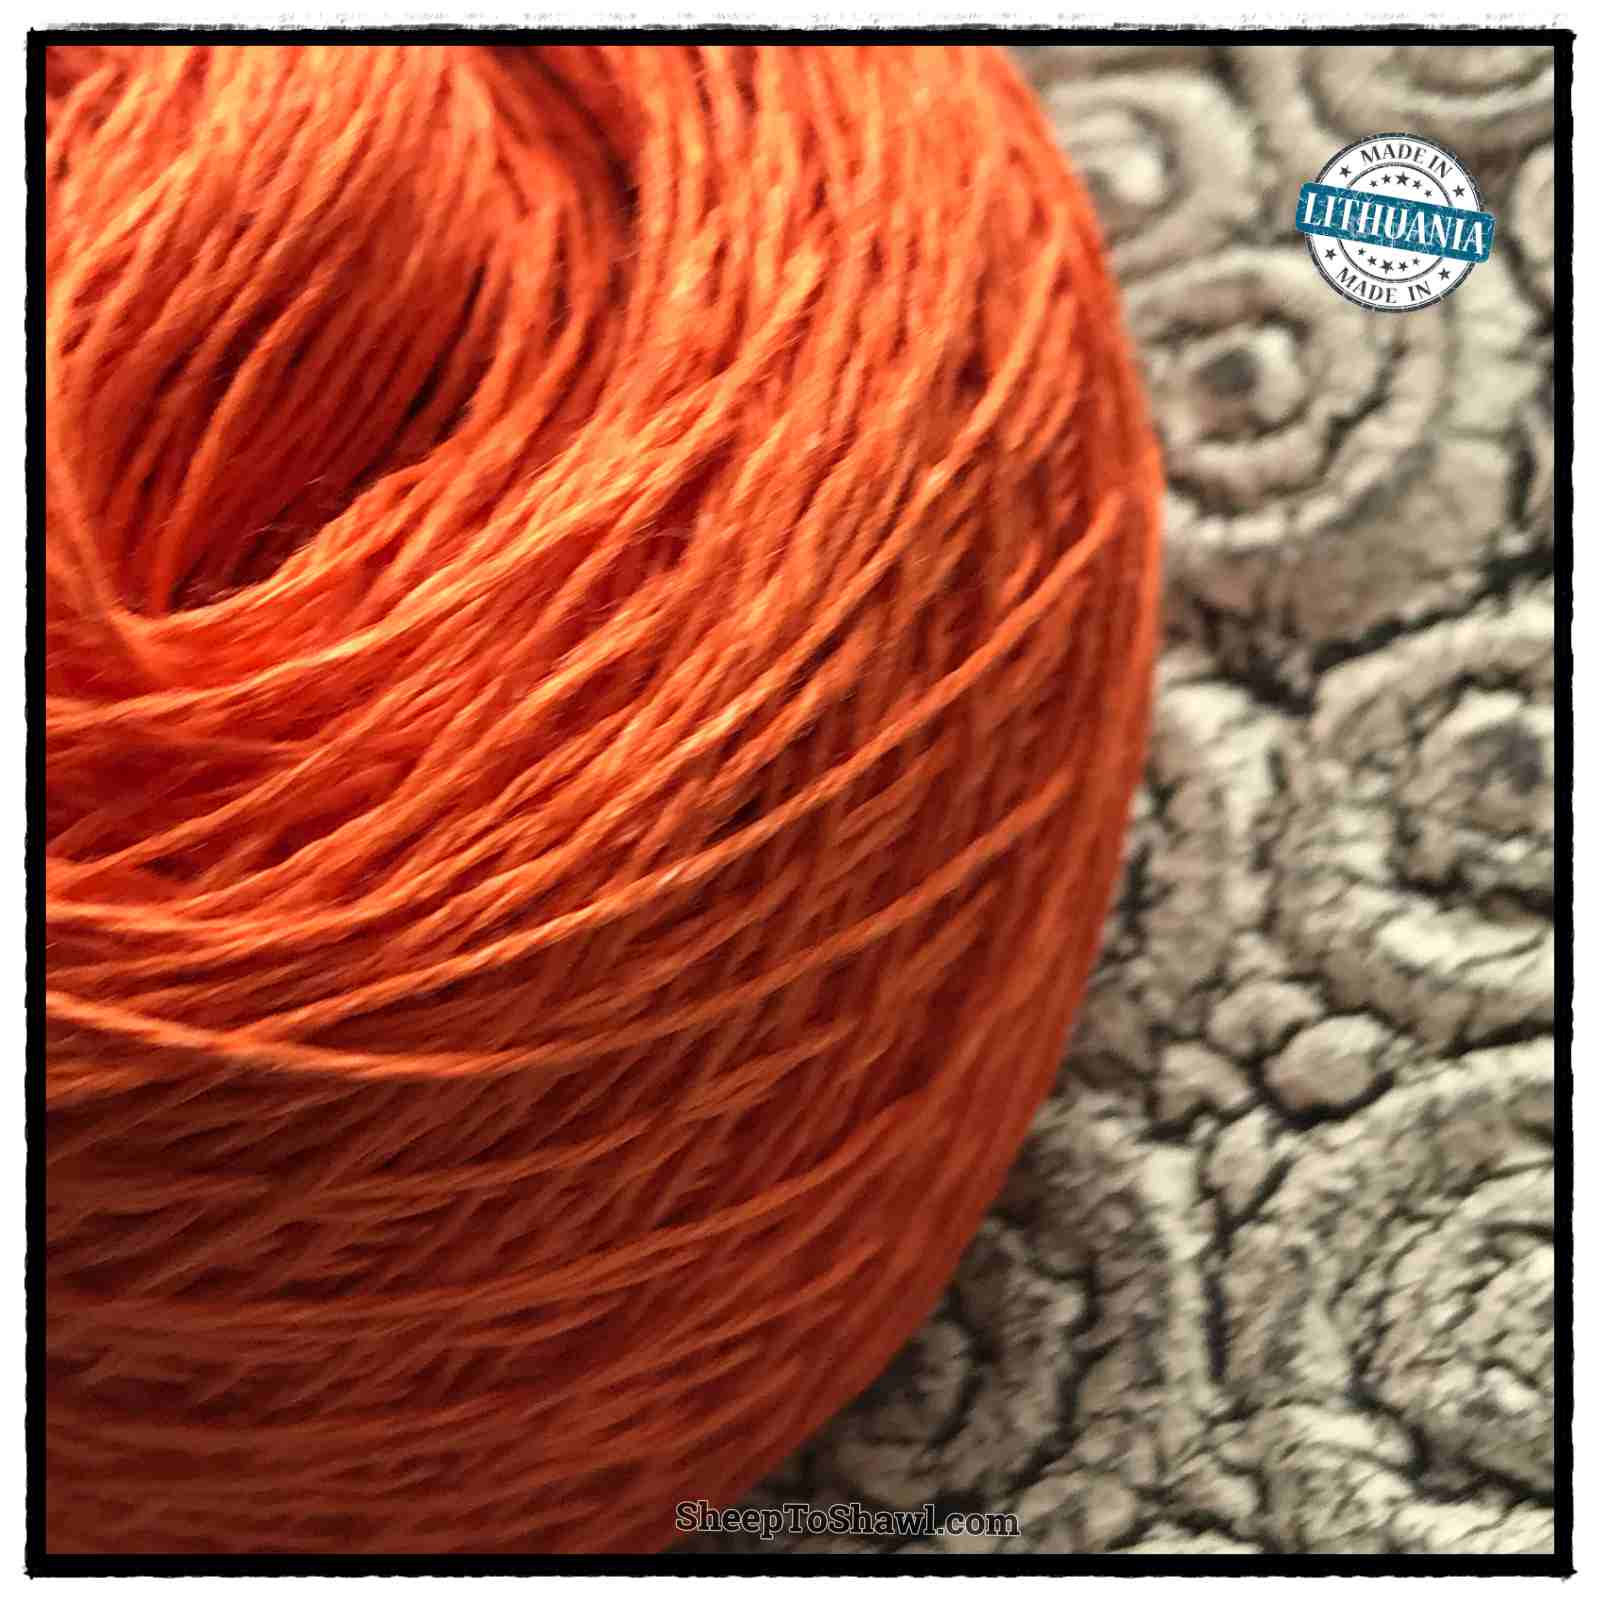 Linen Yarn From Lithuania - 3 ply Orange 1